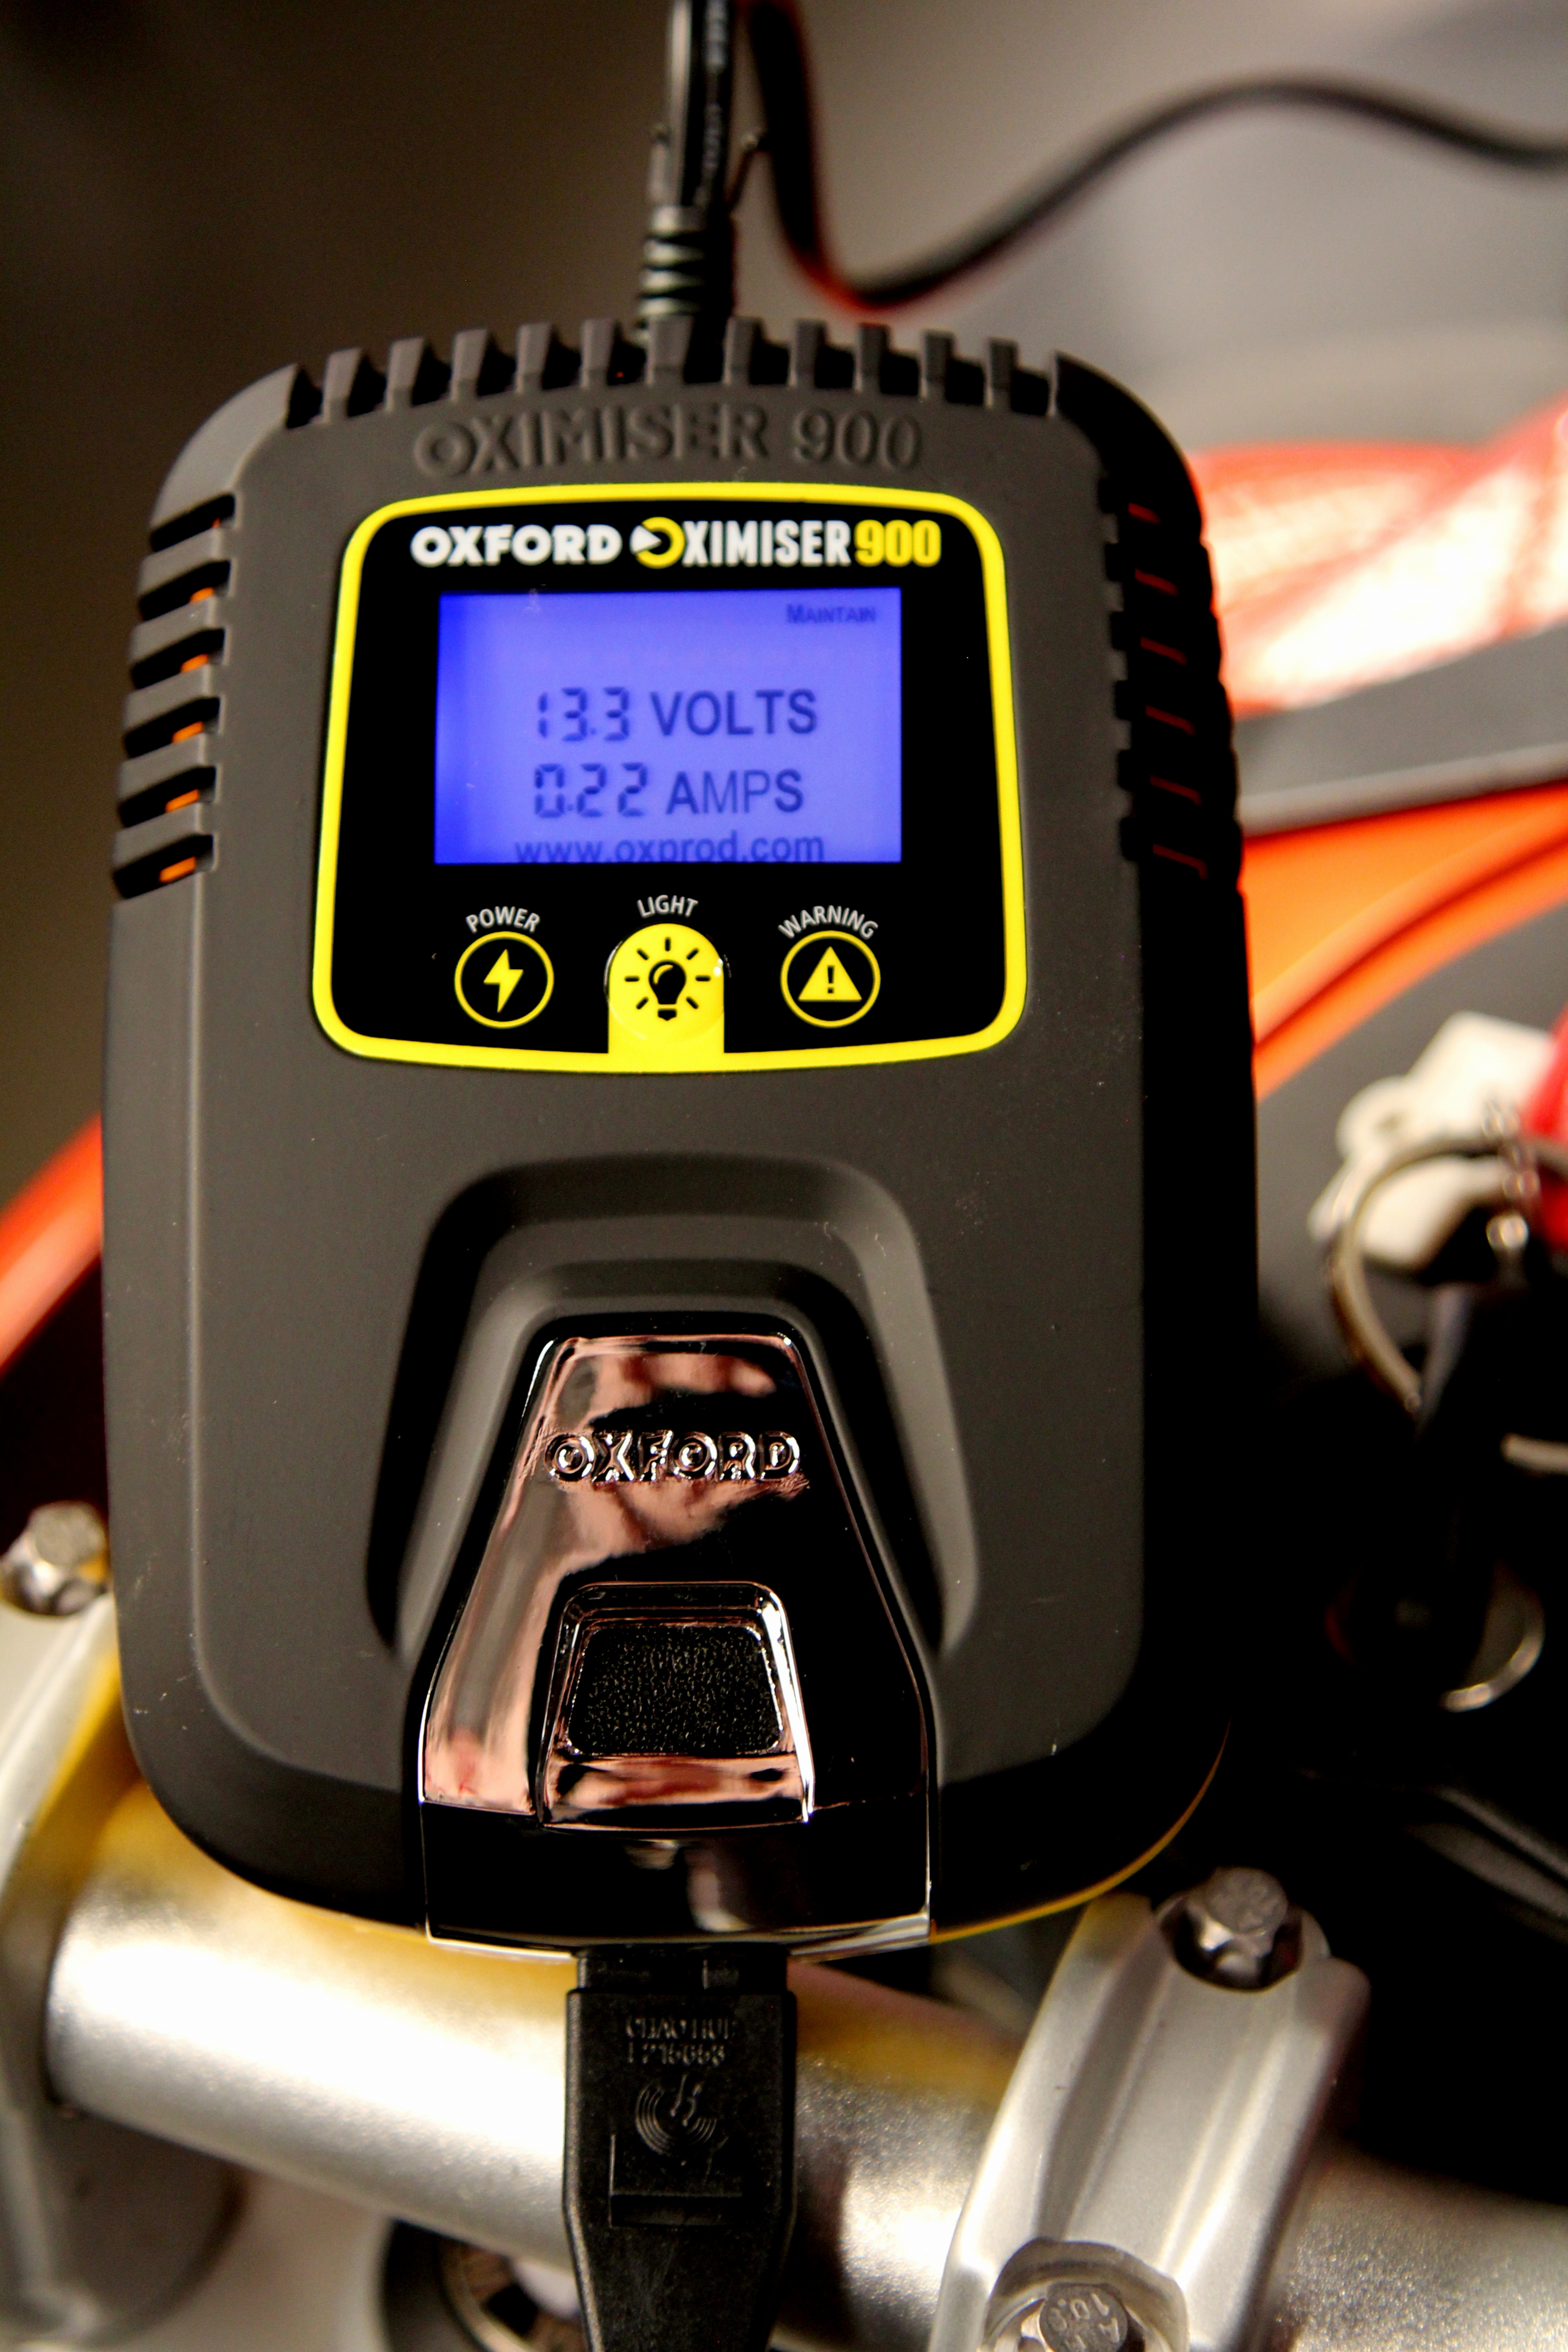 How To Charge A Motorcycle Battery Revzilla Circuit 12v Desulfator Kit Charger With Auto Cut Off